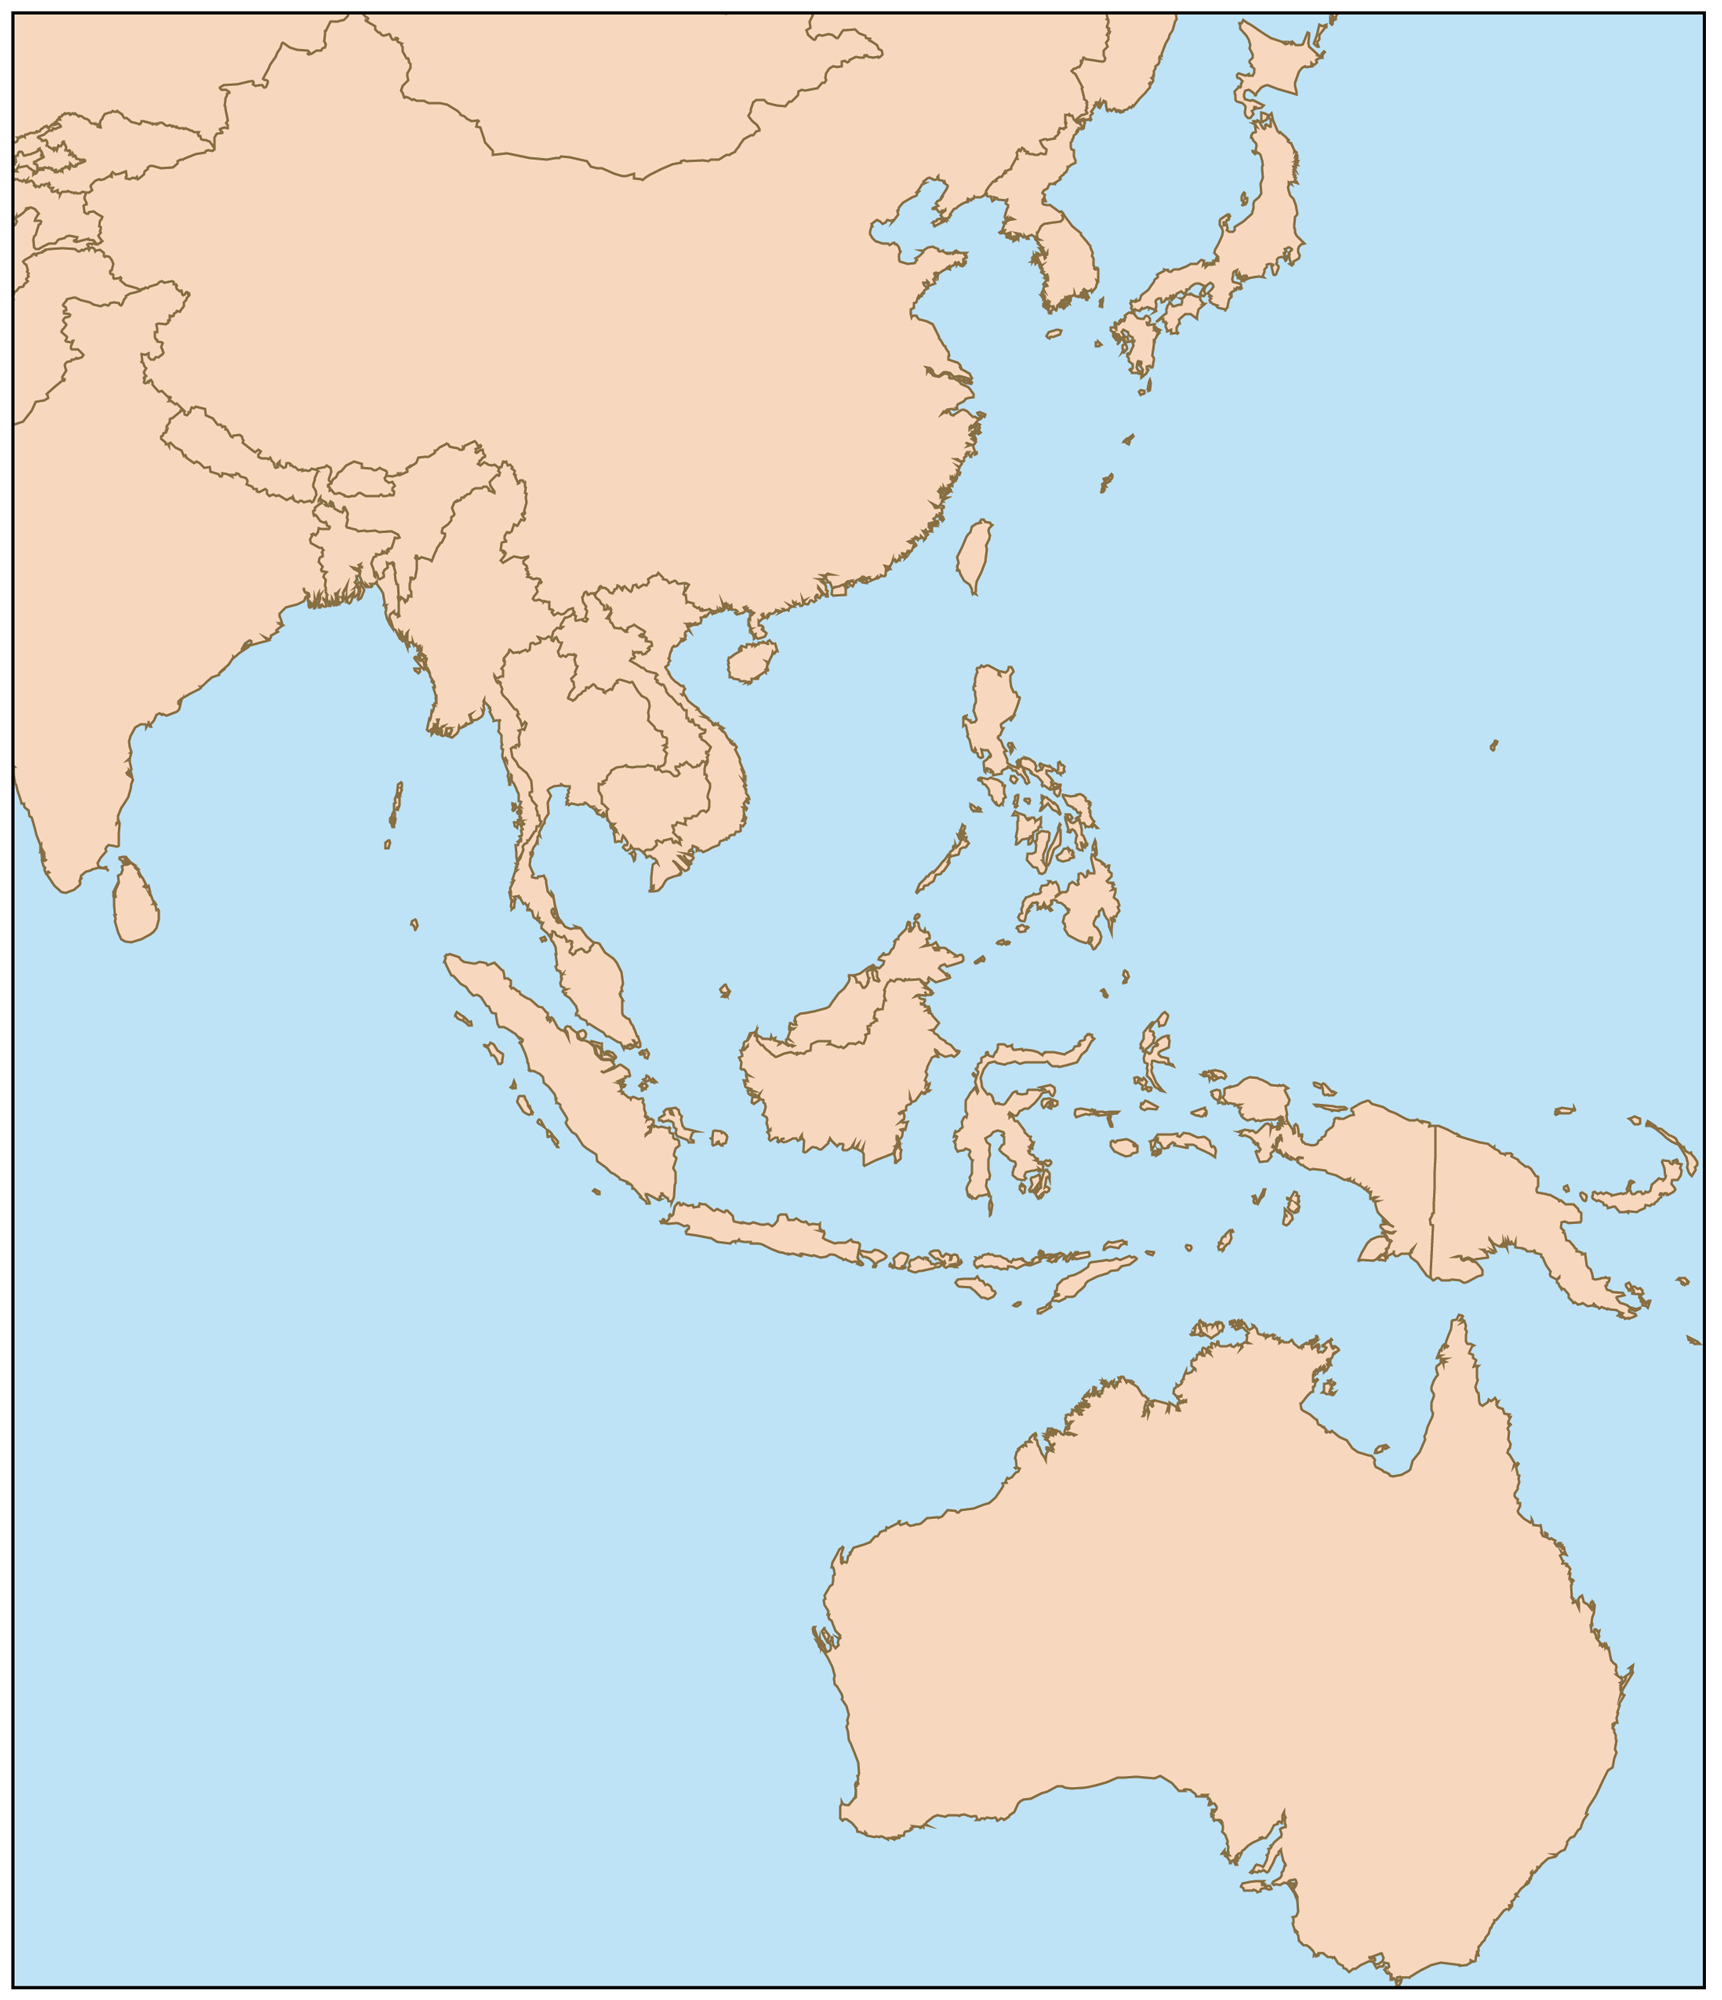 Worksheet. FileSe asia malaysiapng  Wikimedia Commons